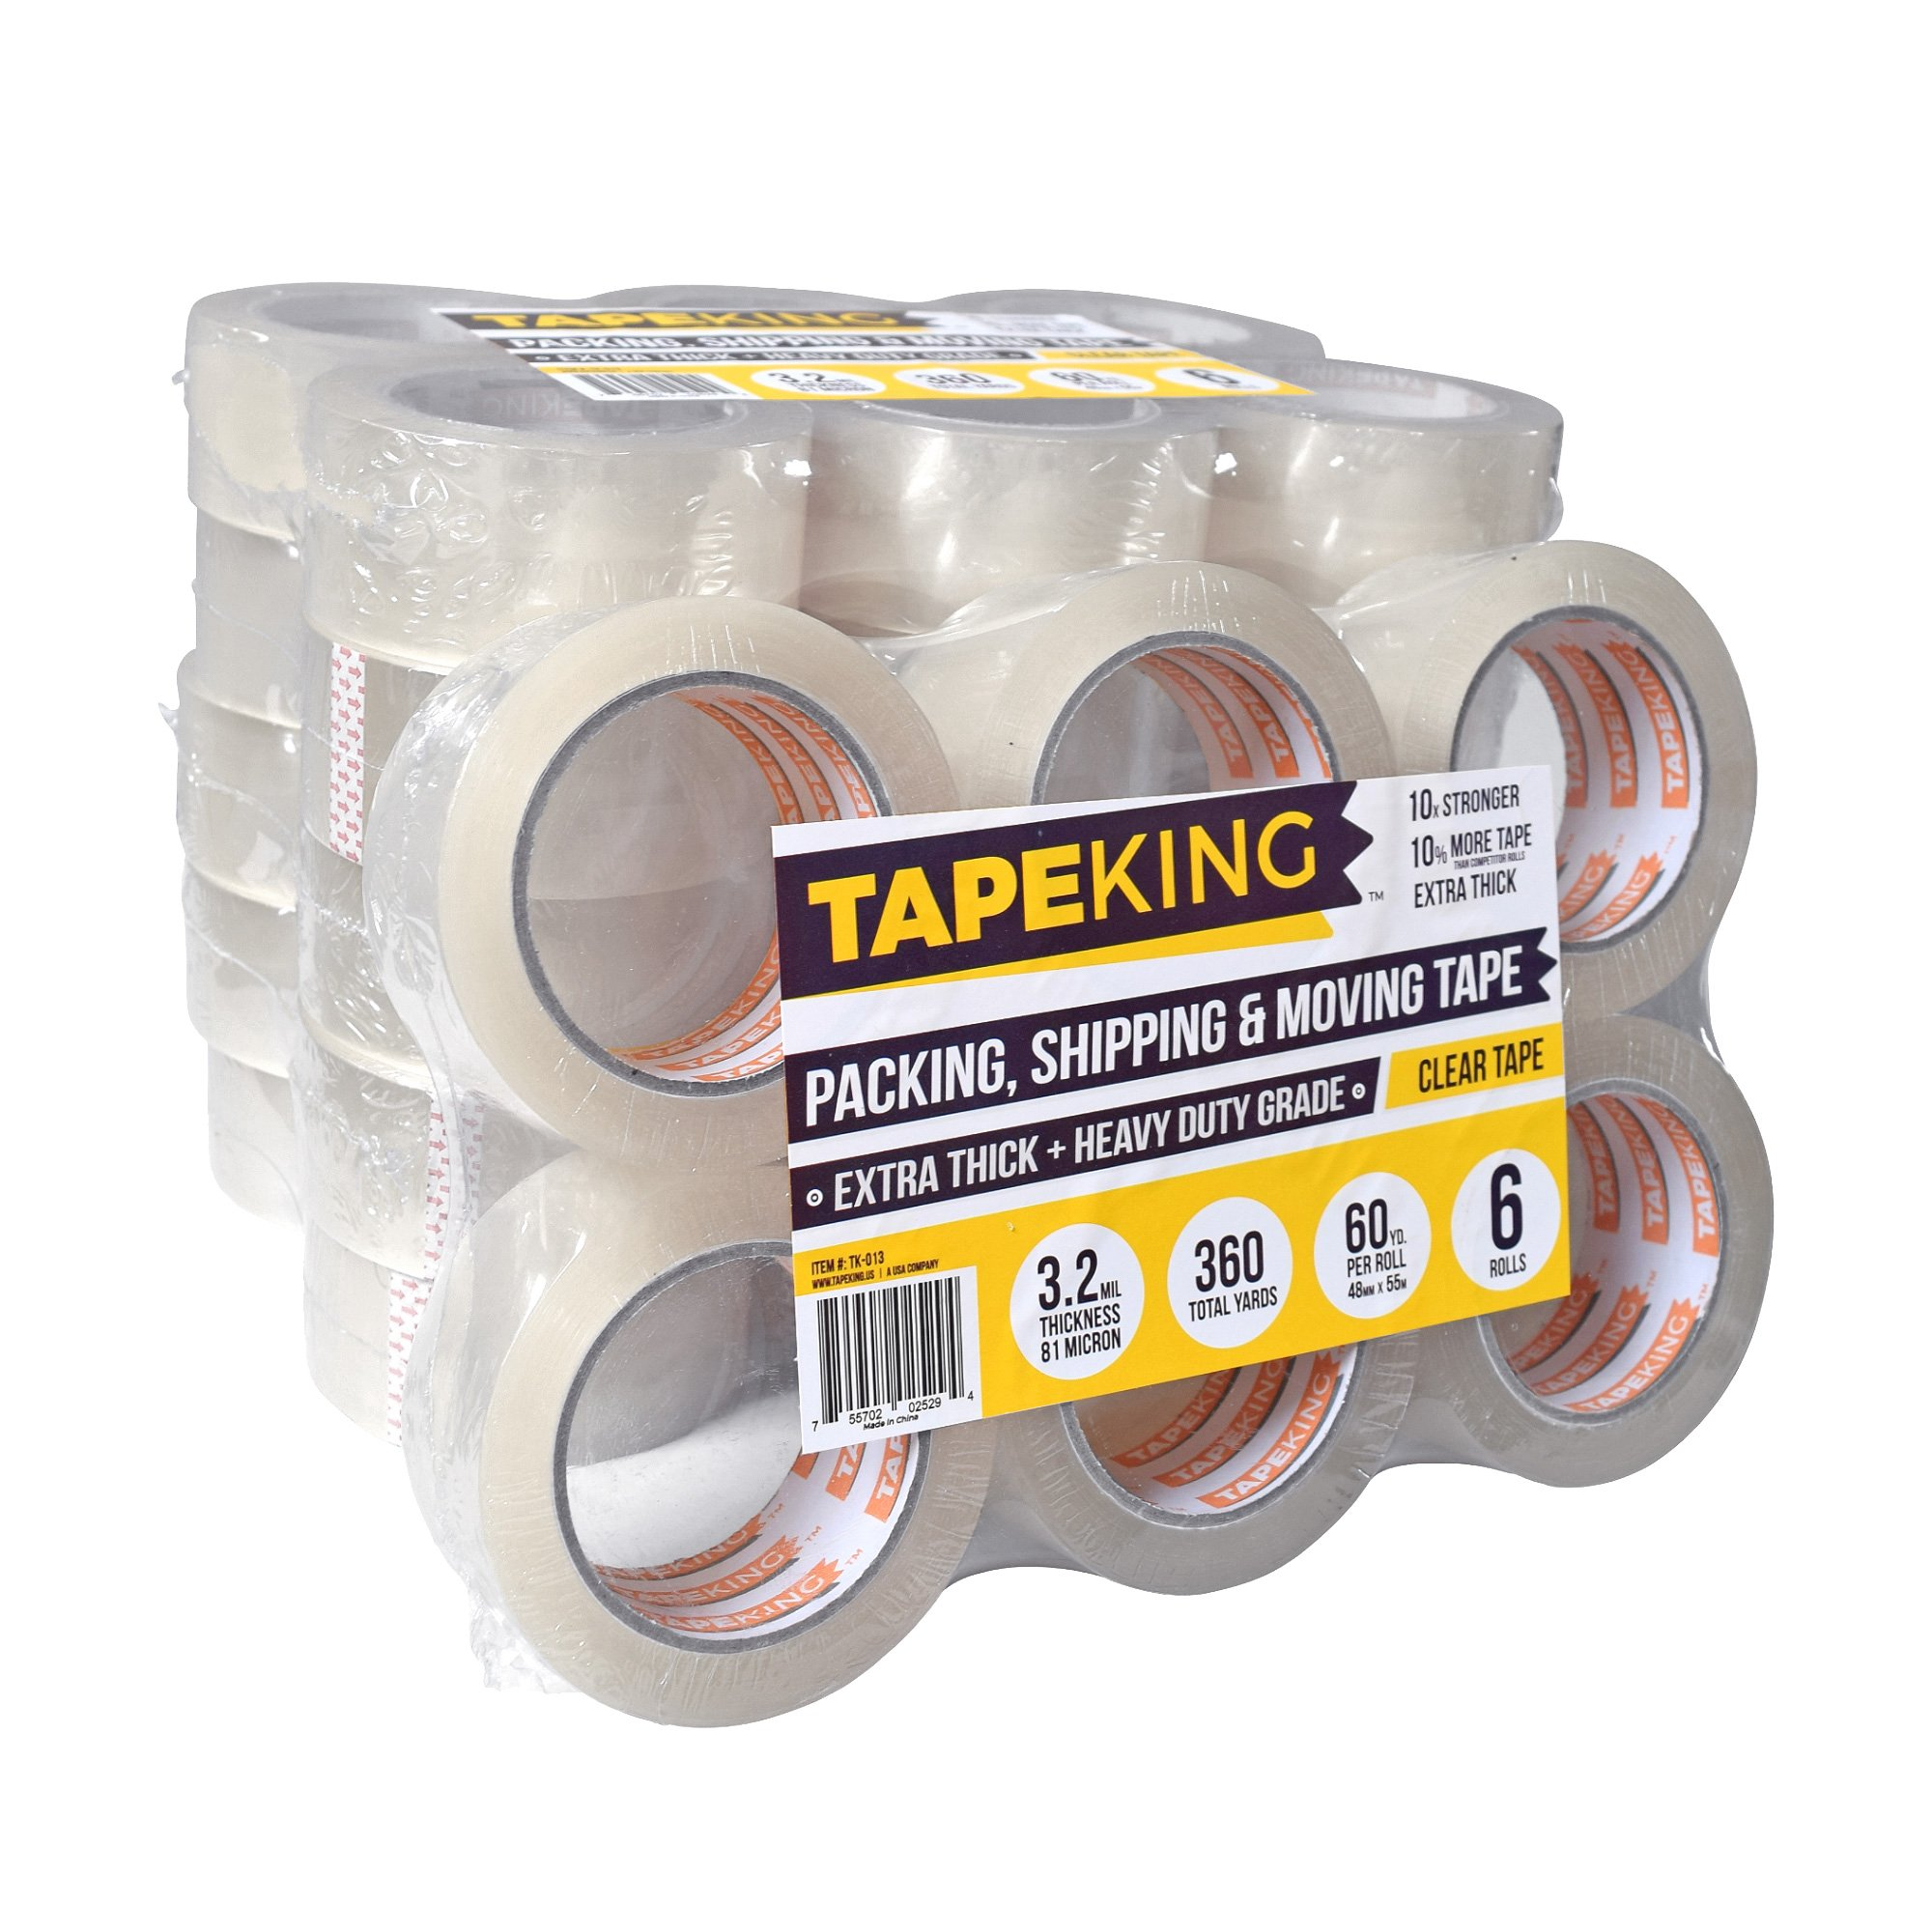 Tape King Clear Packing Tape Super Thick - 60 Yards Per Roll (Case of 36 Rolls) - Strong 3.2mil, Heavy Duty Adhesive Commercial Depot Tape for Moving, Sealing, Packaging Shipping, Office & Storage by Tape King